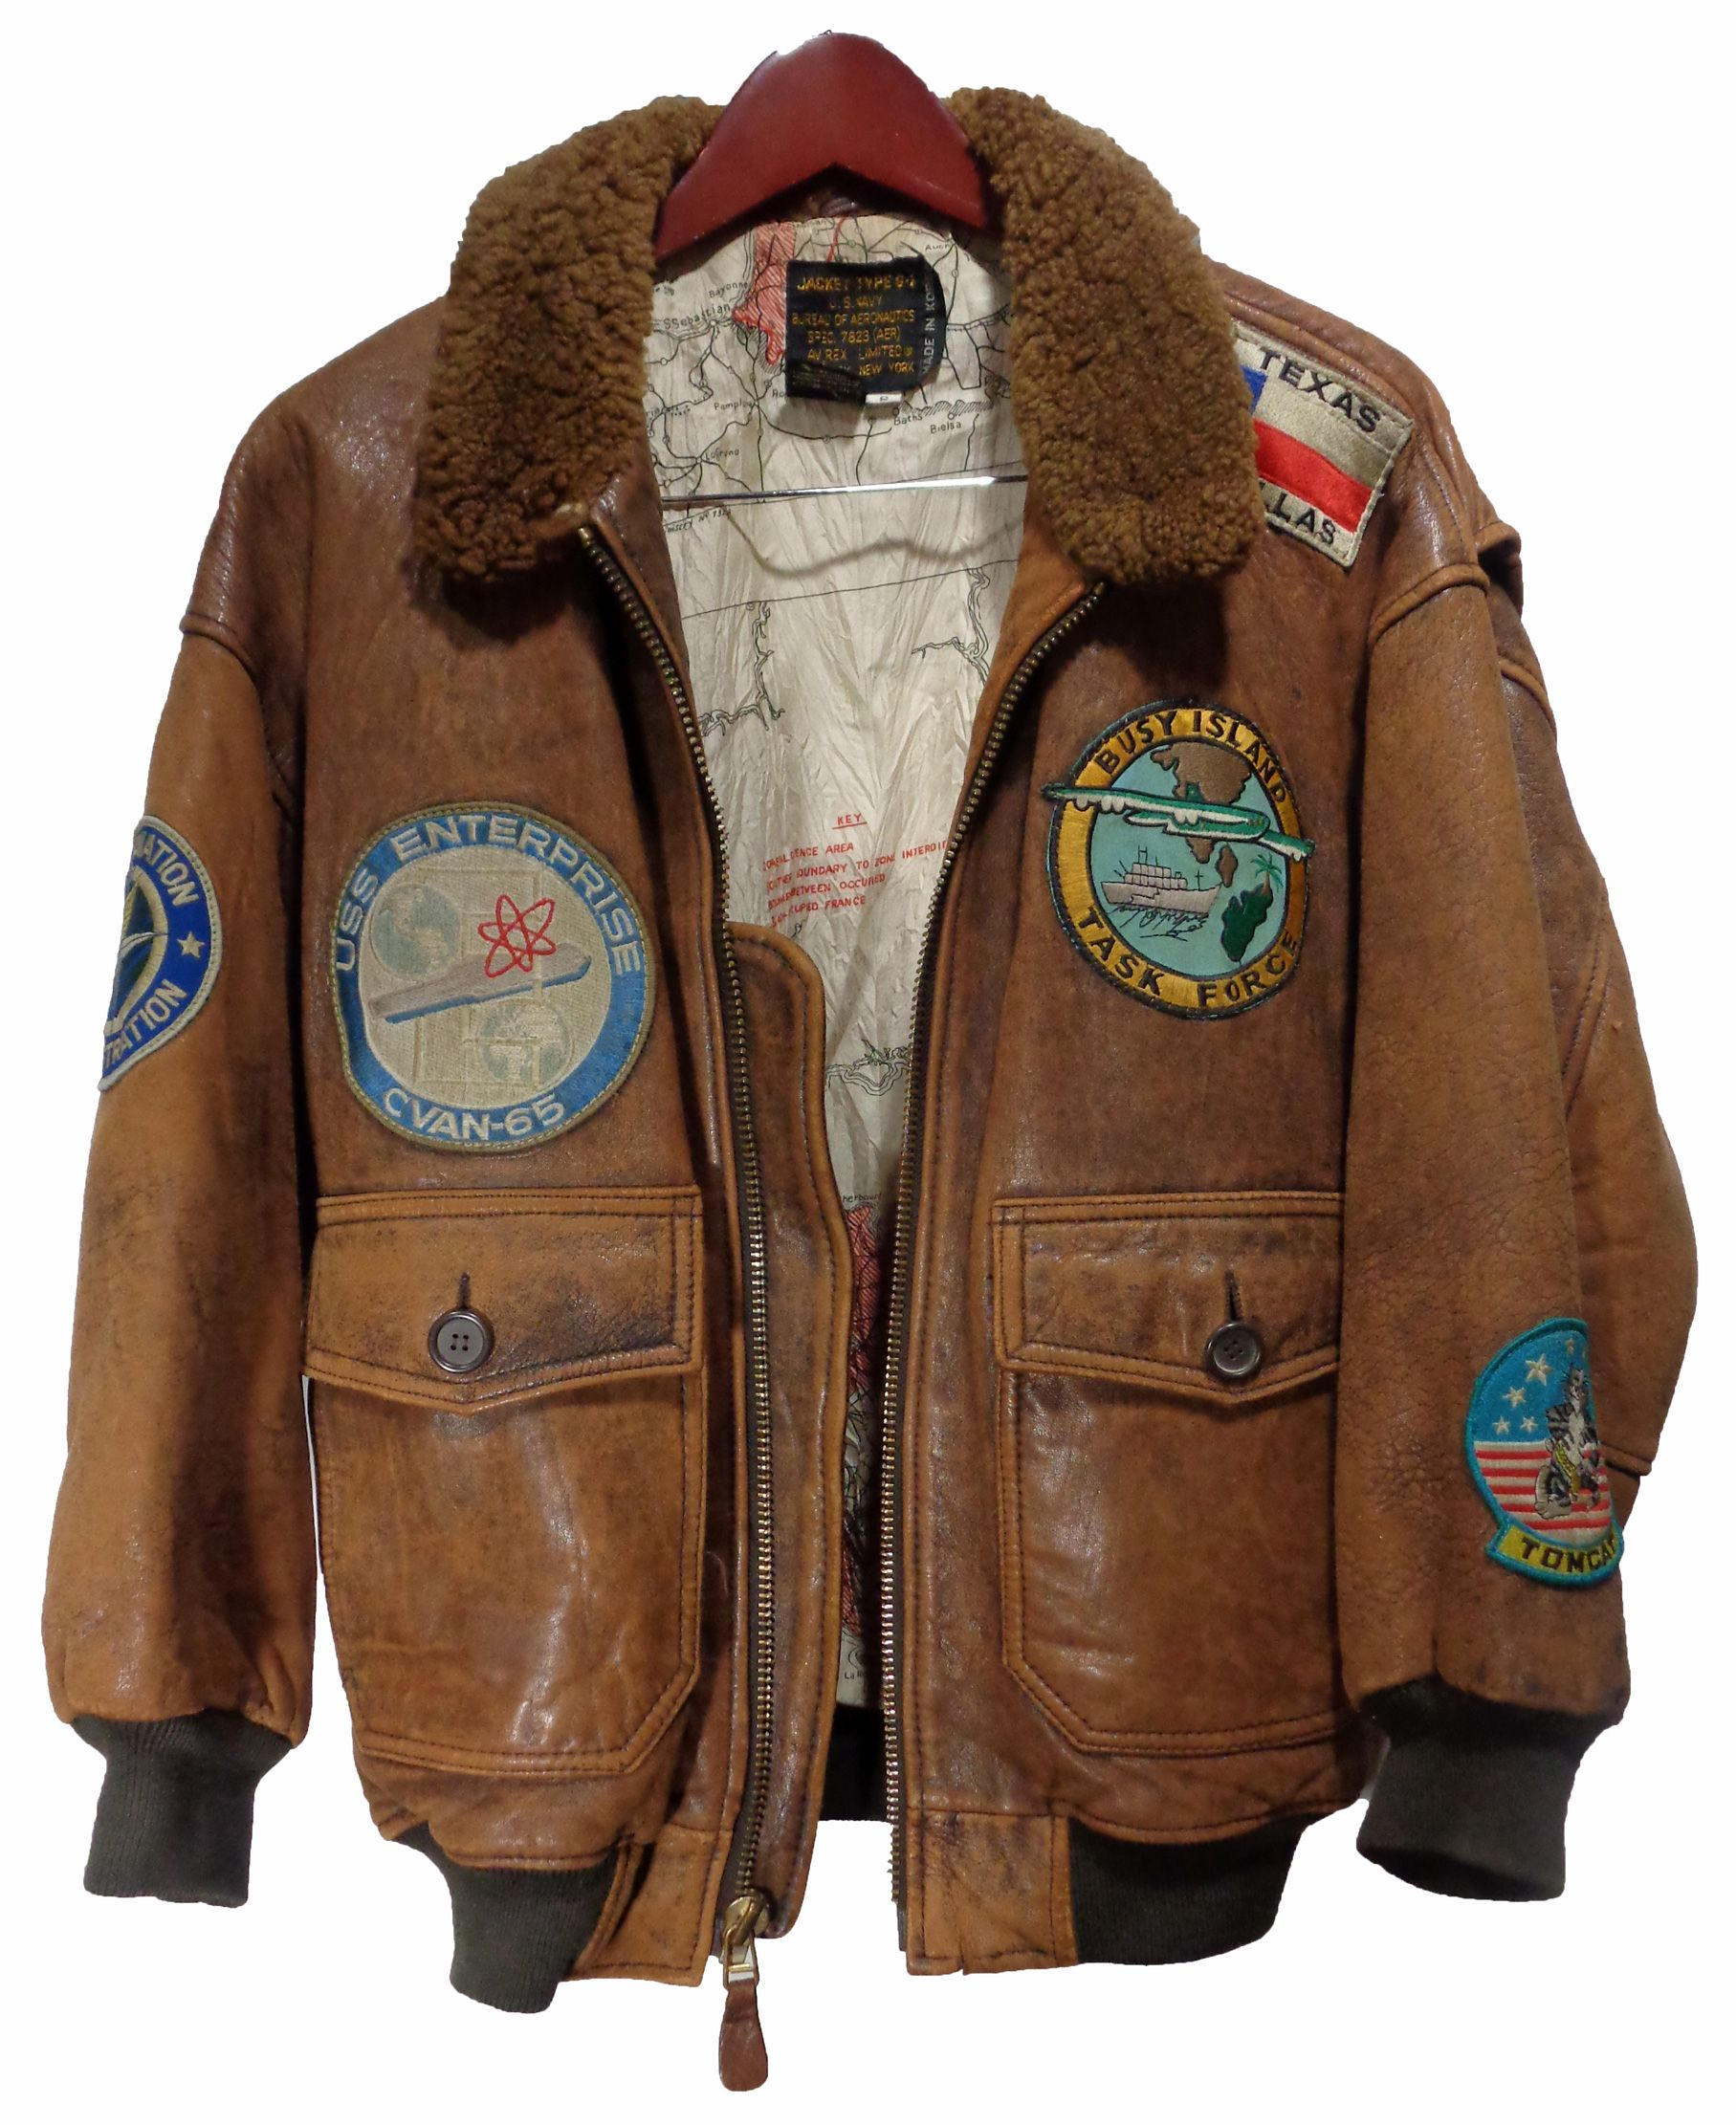 Pin on Nose Art and Flight Jackets